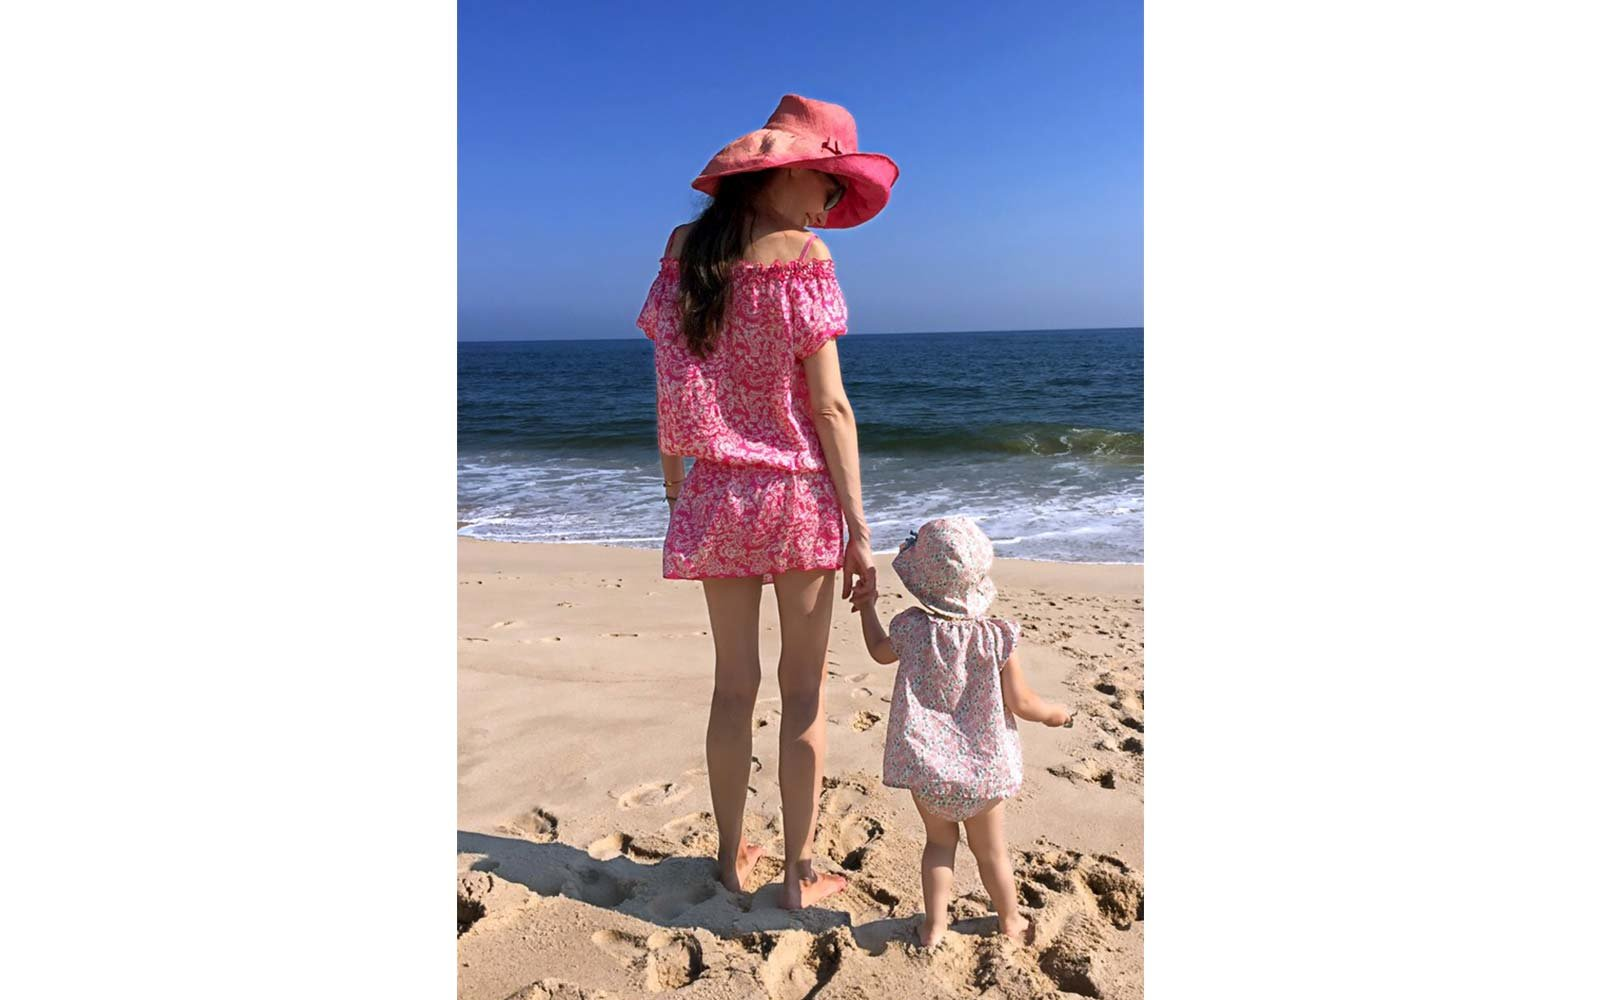 Olivia Chantecaille and child on beach